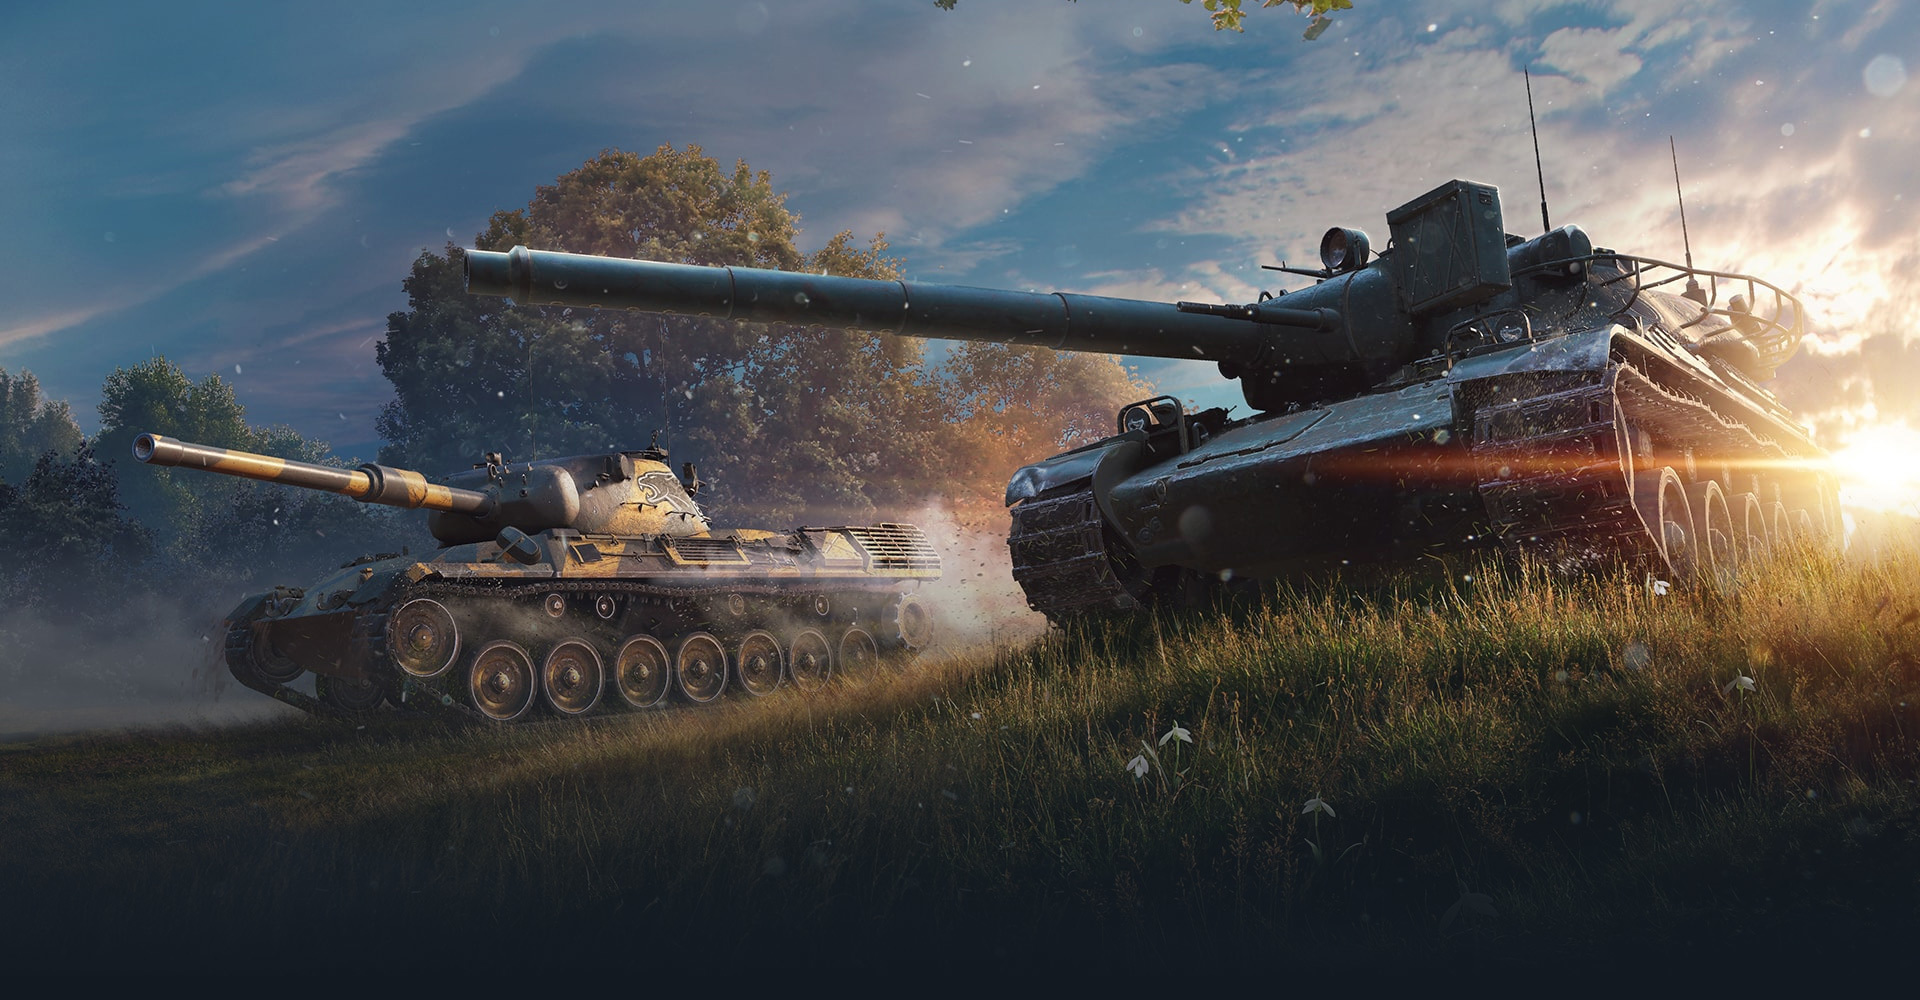 b2189ffb0 Reworked vehicle characteristics on the updated screen, a new camouflage,  start of the Spring Season, a multiple x2 bonus for your first victory in a  tank, ...